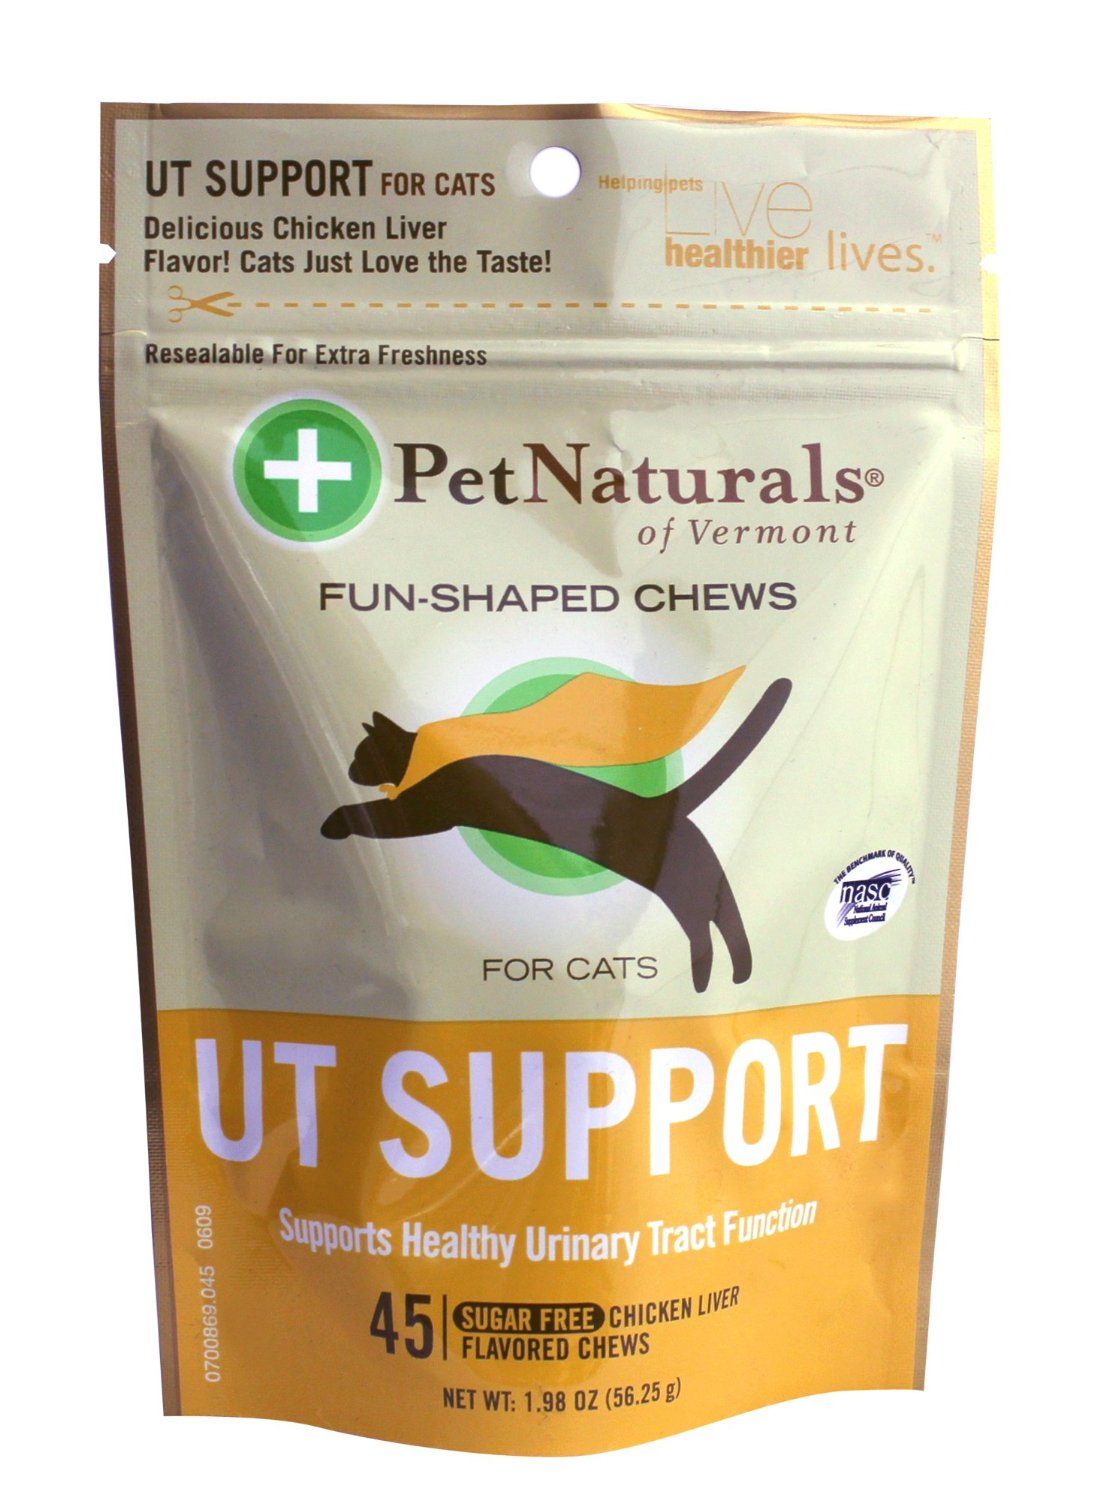 Pet Naturals UT Support for Cats